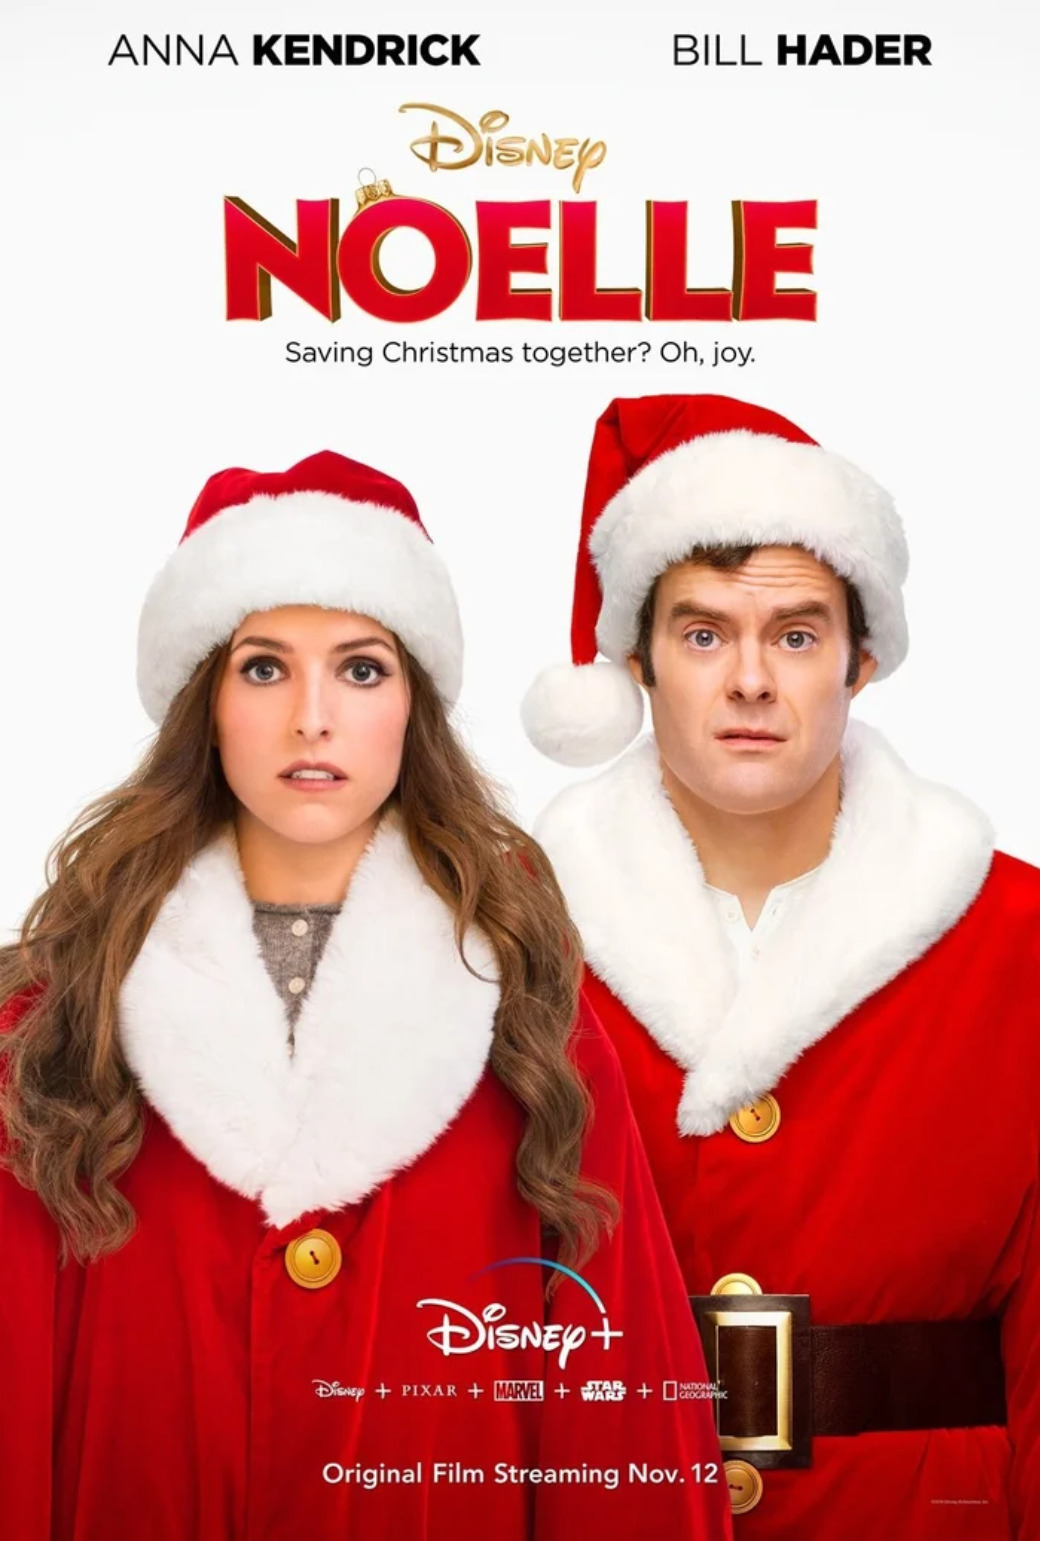 Screenshot_2019-08-23 disney-s-noelle-movie-poster-1184330 jpeg (WEBP Image, 700 × 1037 pixels) - Scaled (71%).jpg